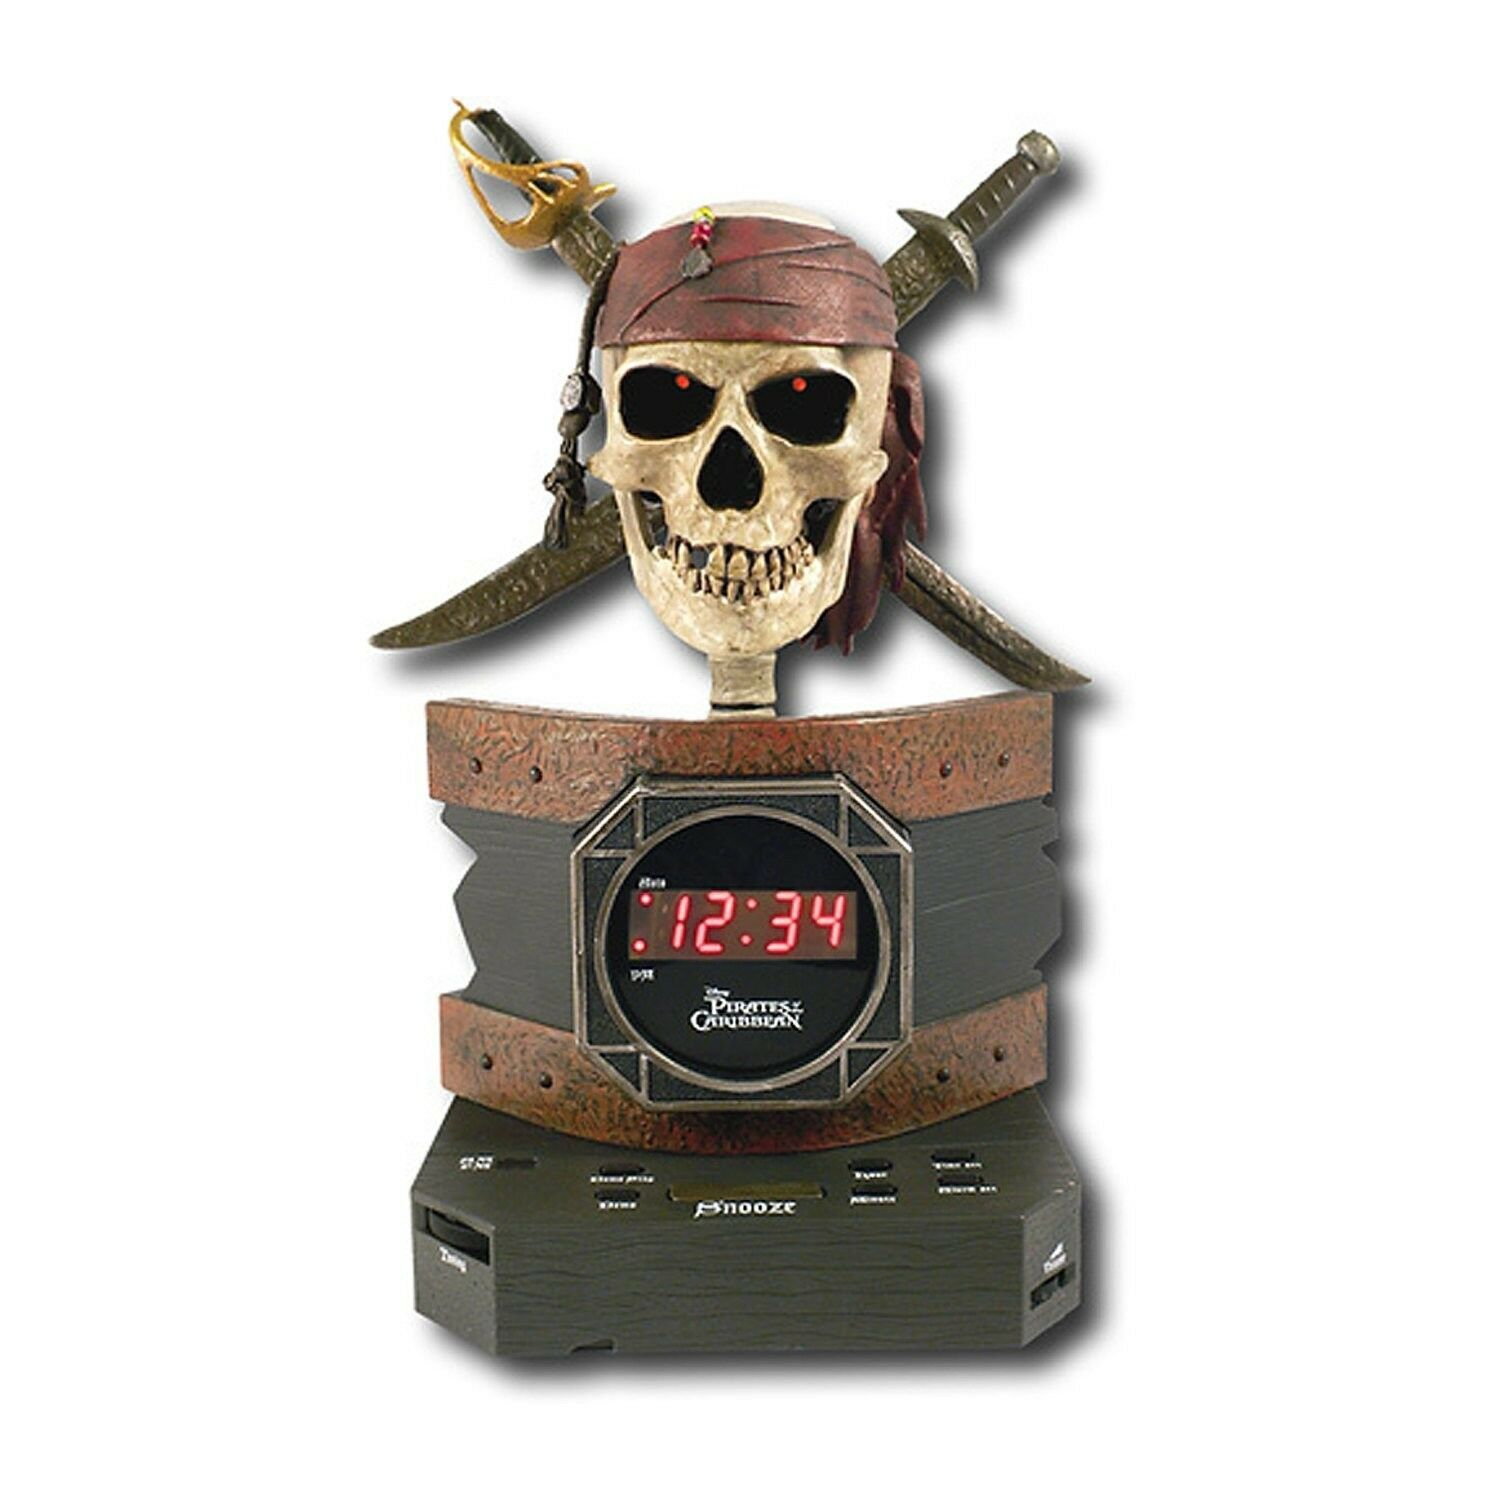 Disney PC300ACR Pirates of the Caribbean Alarm Clock Radio NEW FREE SHIPPING